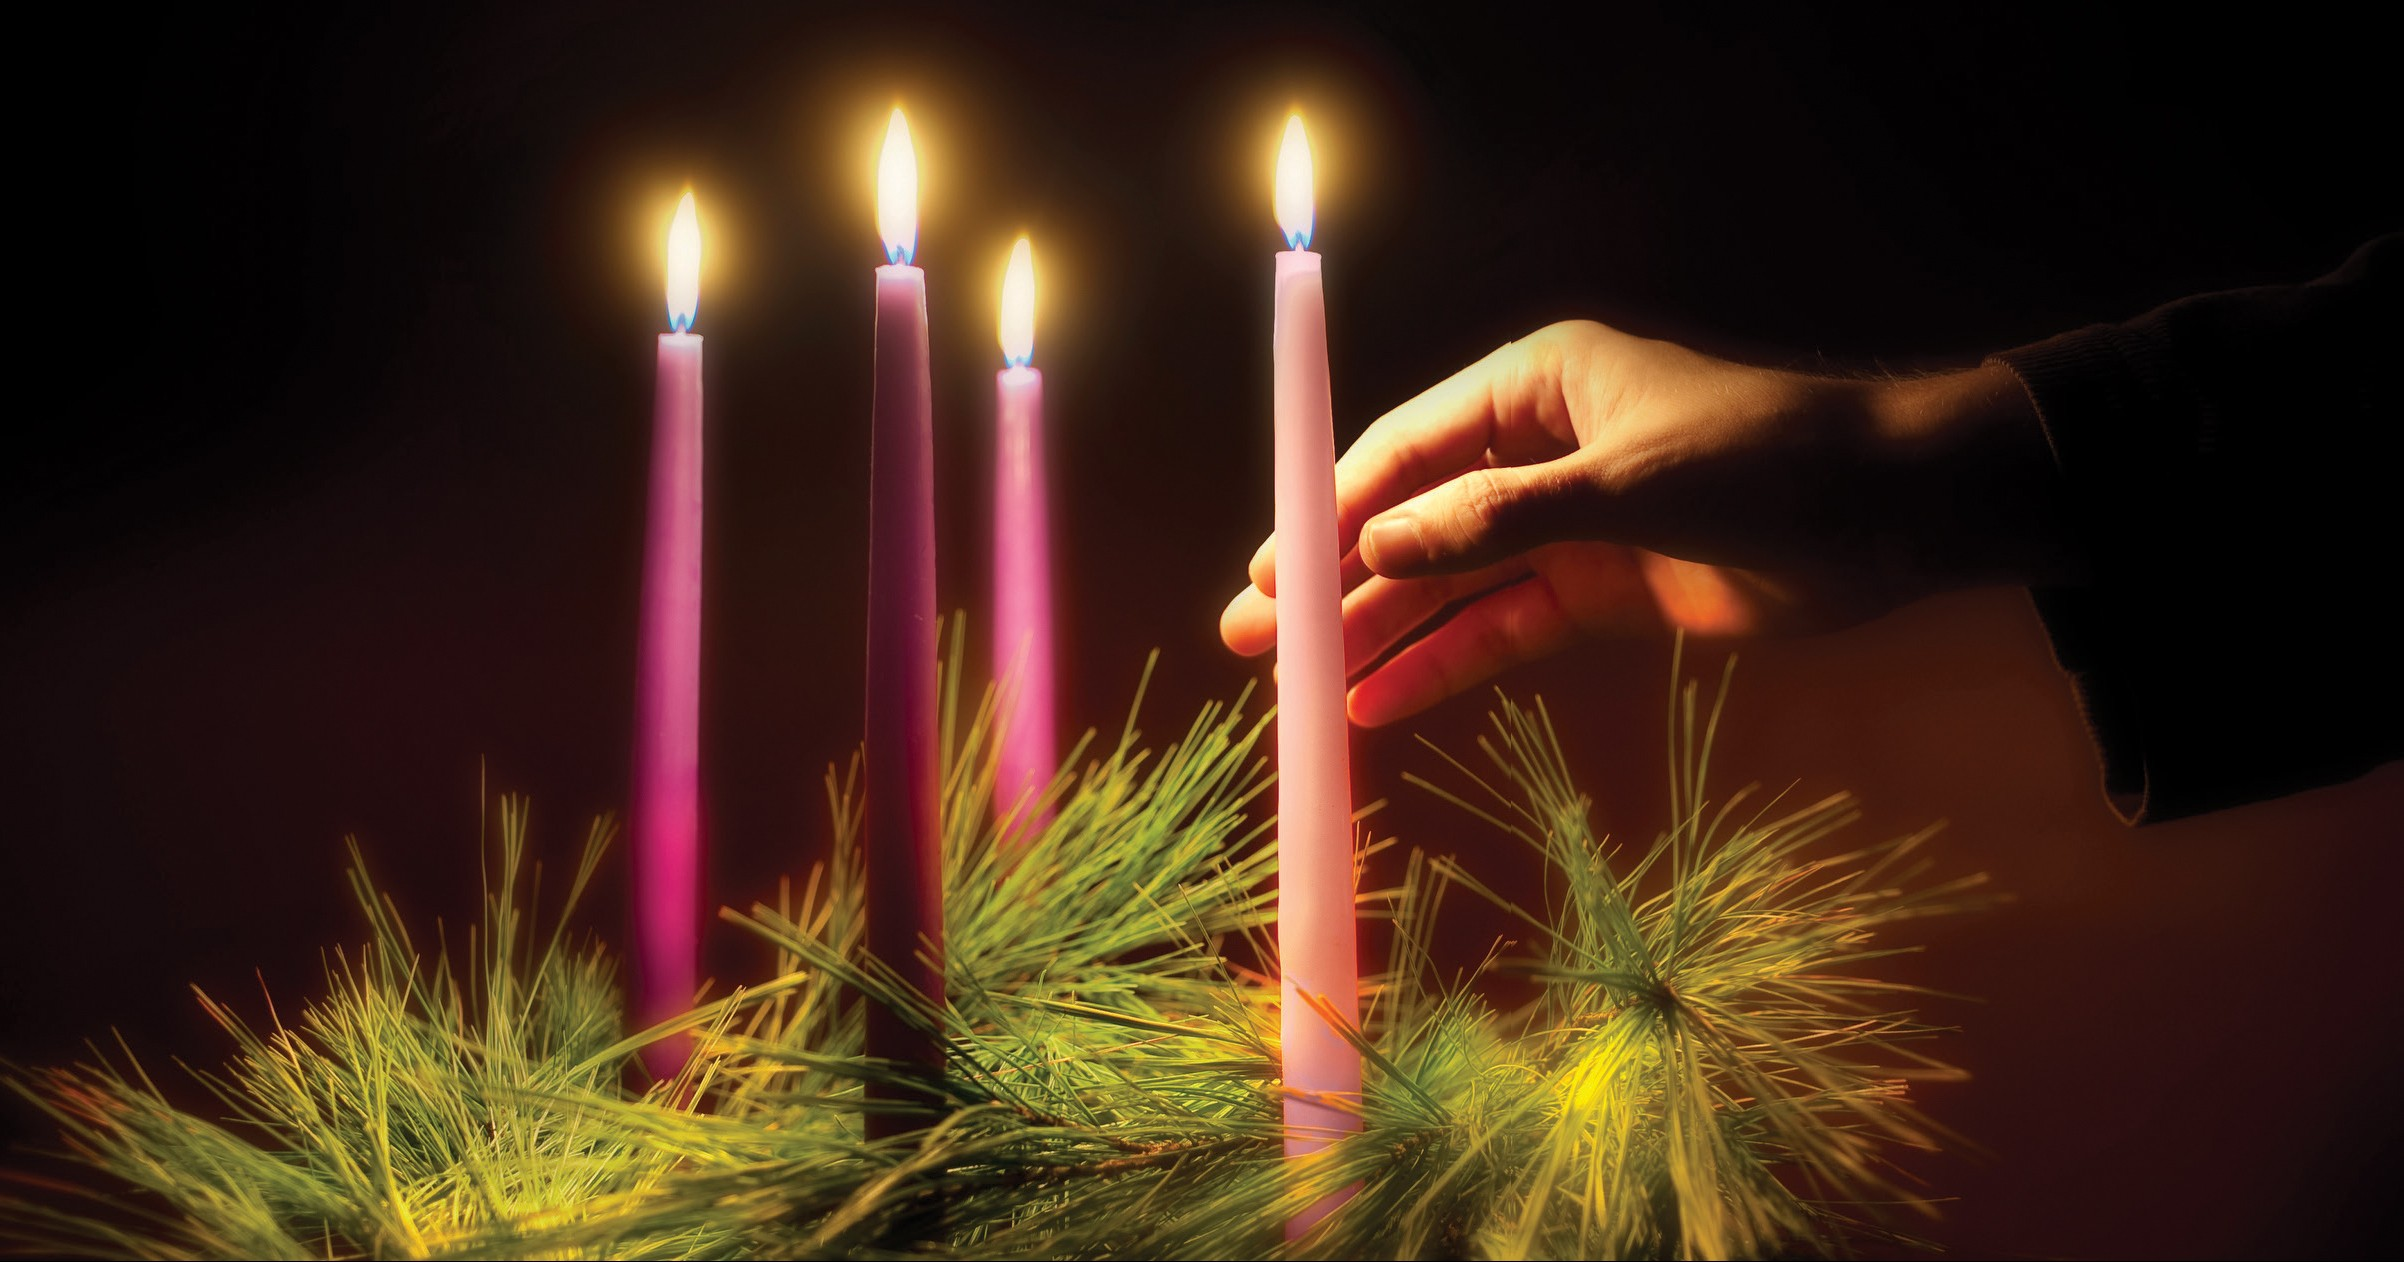 The season of Advent is a time of anticipation and hope before Christmas. The Advent wreath, with a lit candle marking each week of the season, is a traditional symbol of the period. (CNS photo/Lisa A. Johnston) (Oct. 25, 2011)